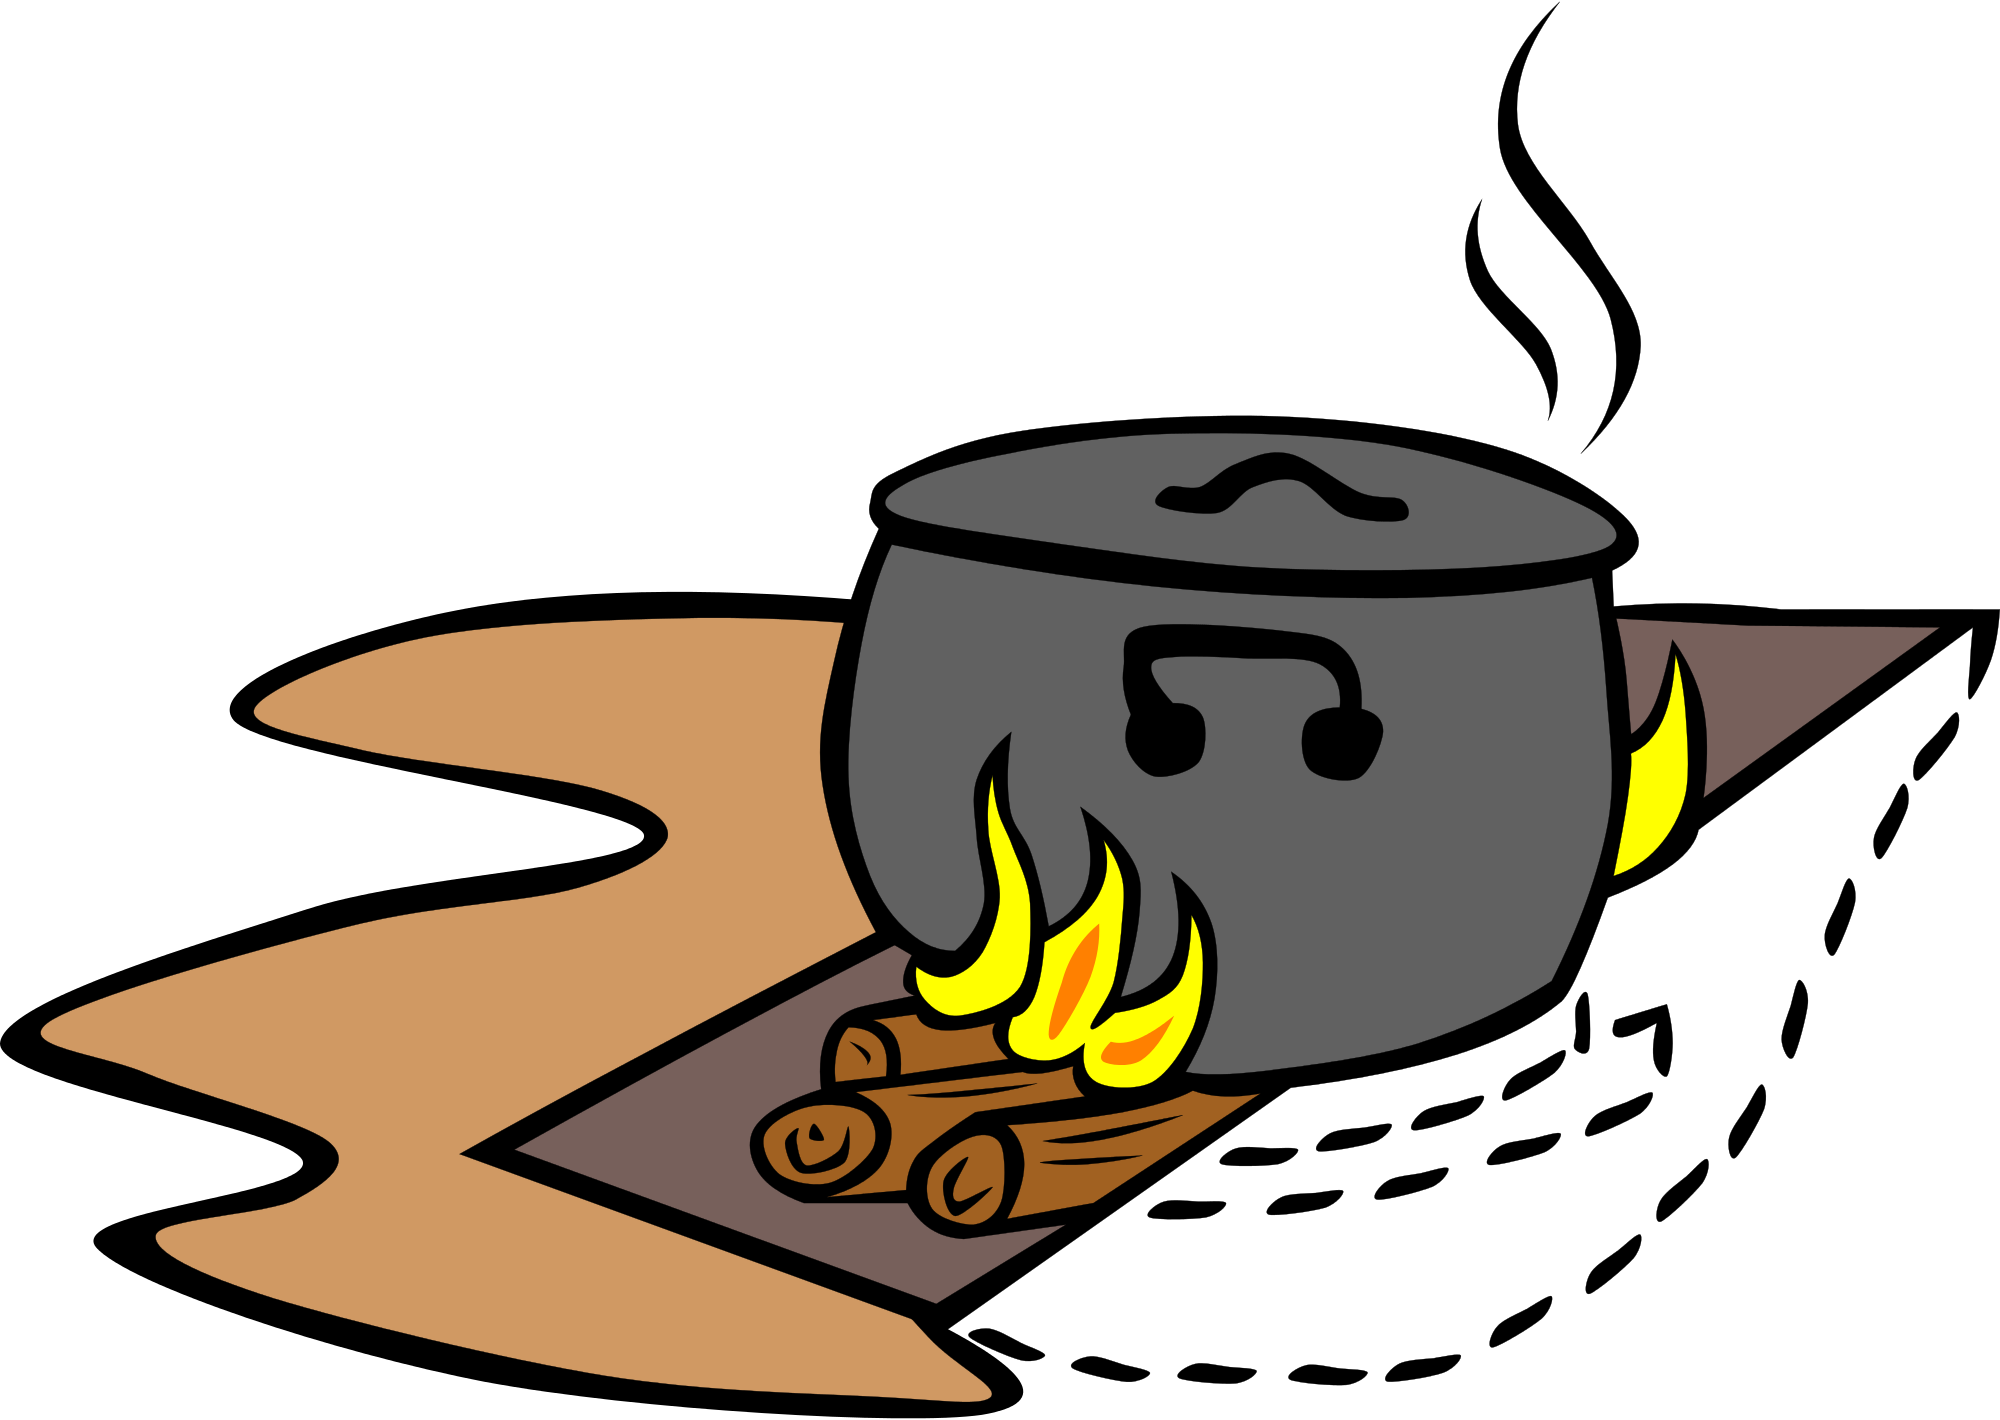 Cooking clipart outdoor cooking. File camp trench fire